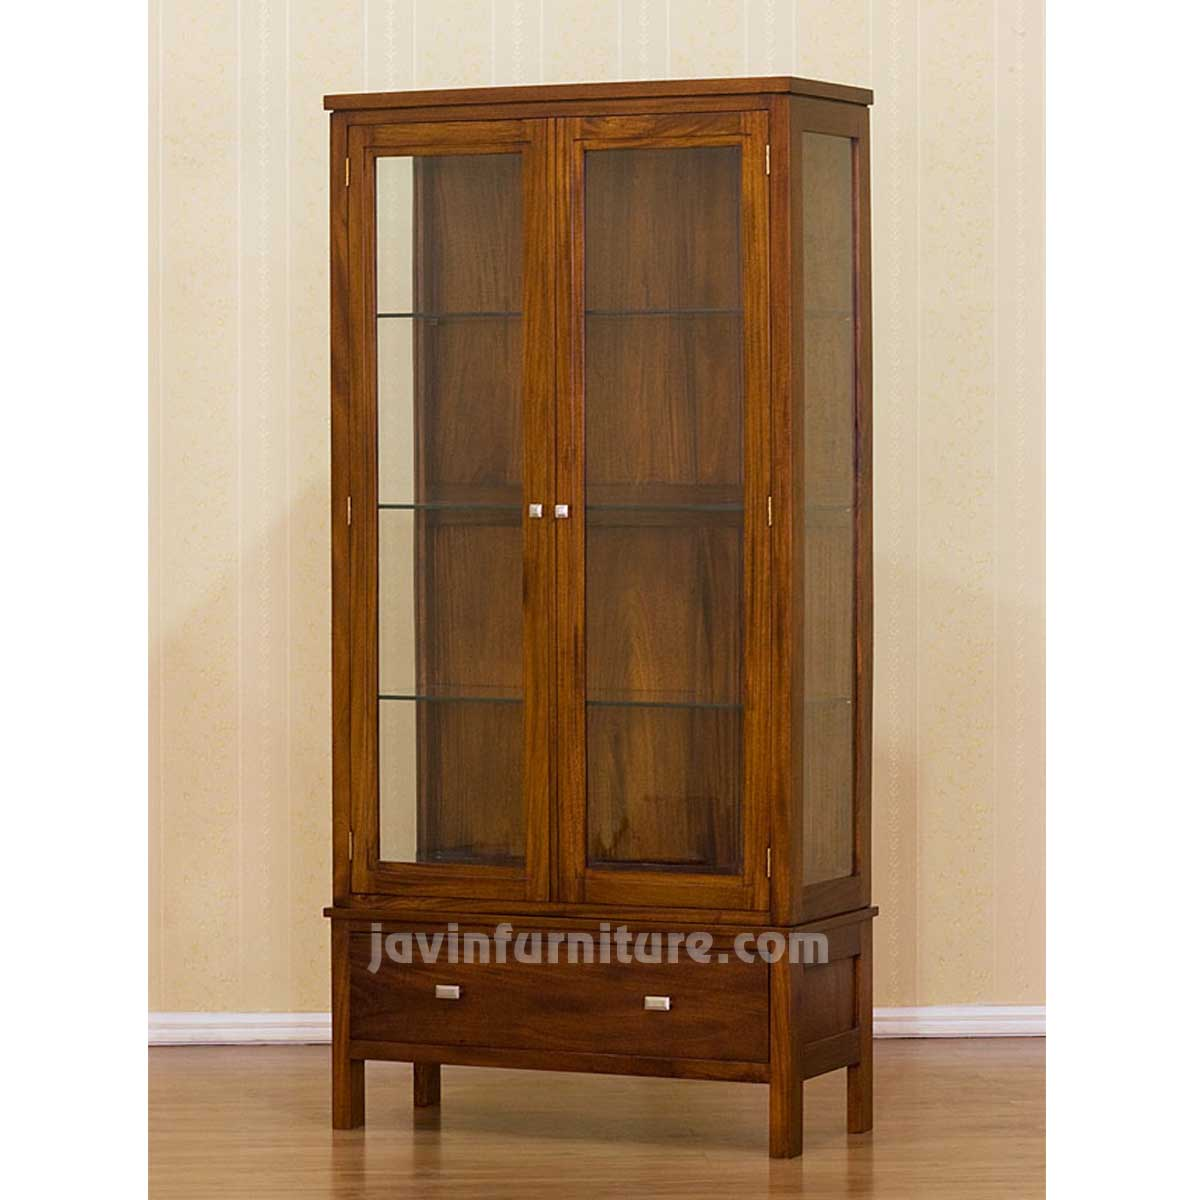 Wooden Storage Cabinets ~ Storage cabinet with glass doors homesfeed